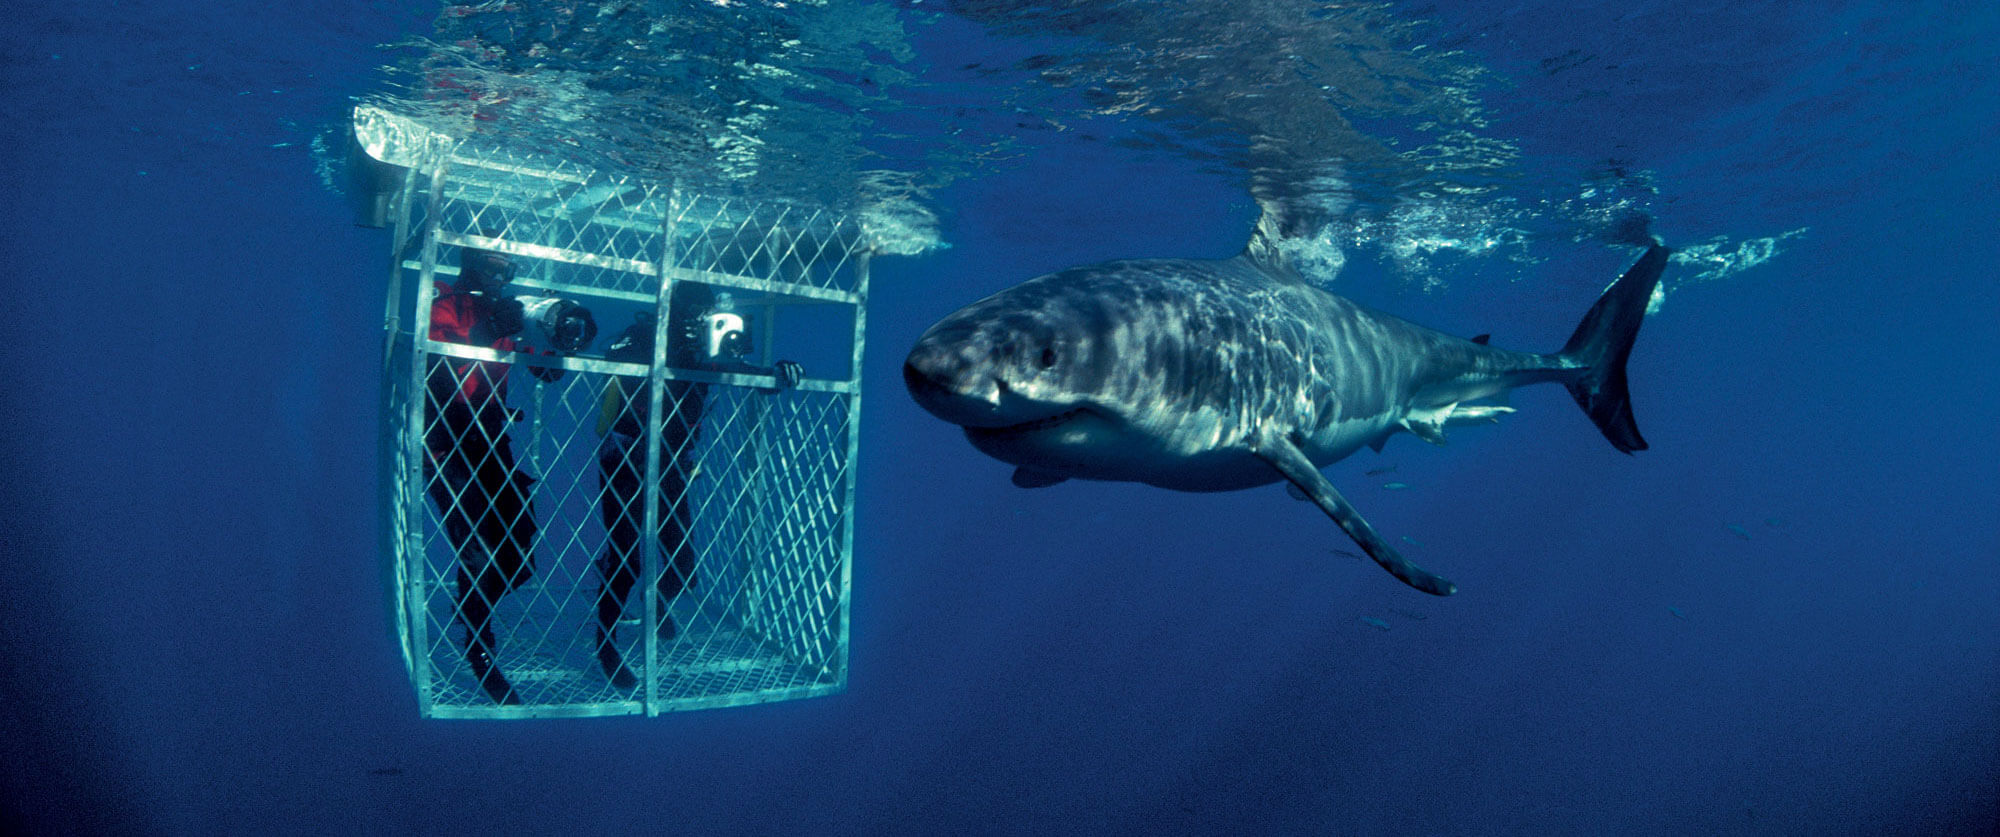 Private Shark Cage Diving Cape Town - Kruger Safari, City, and Winelands Vacation